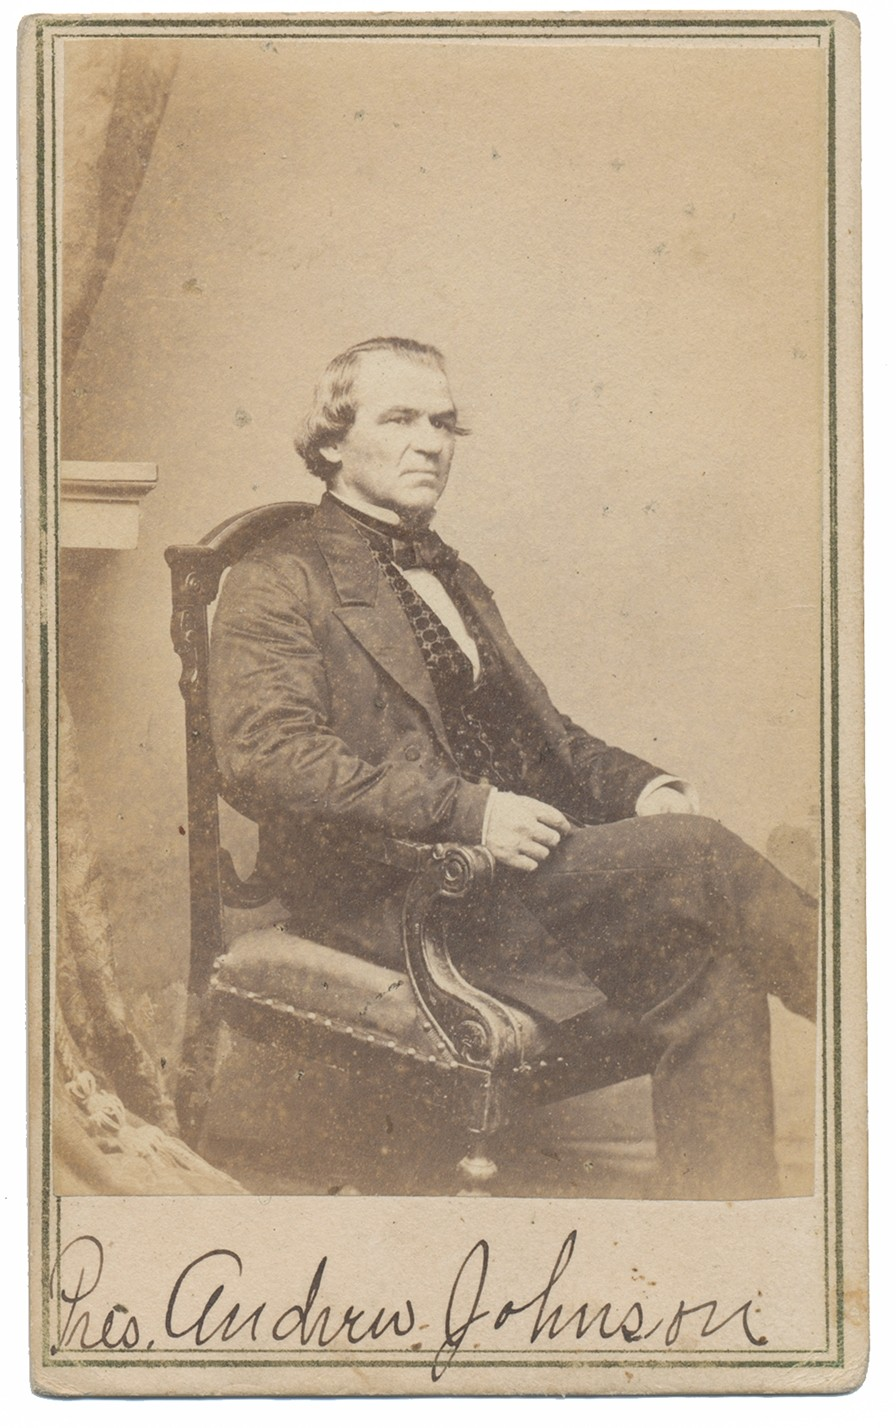 CDV SEATED VIEW OF PRESIDENT ANDREW JOHNSON BY ANTHONY